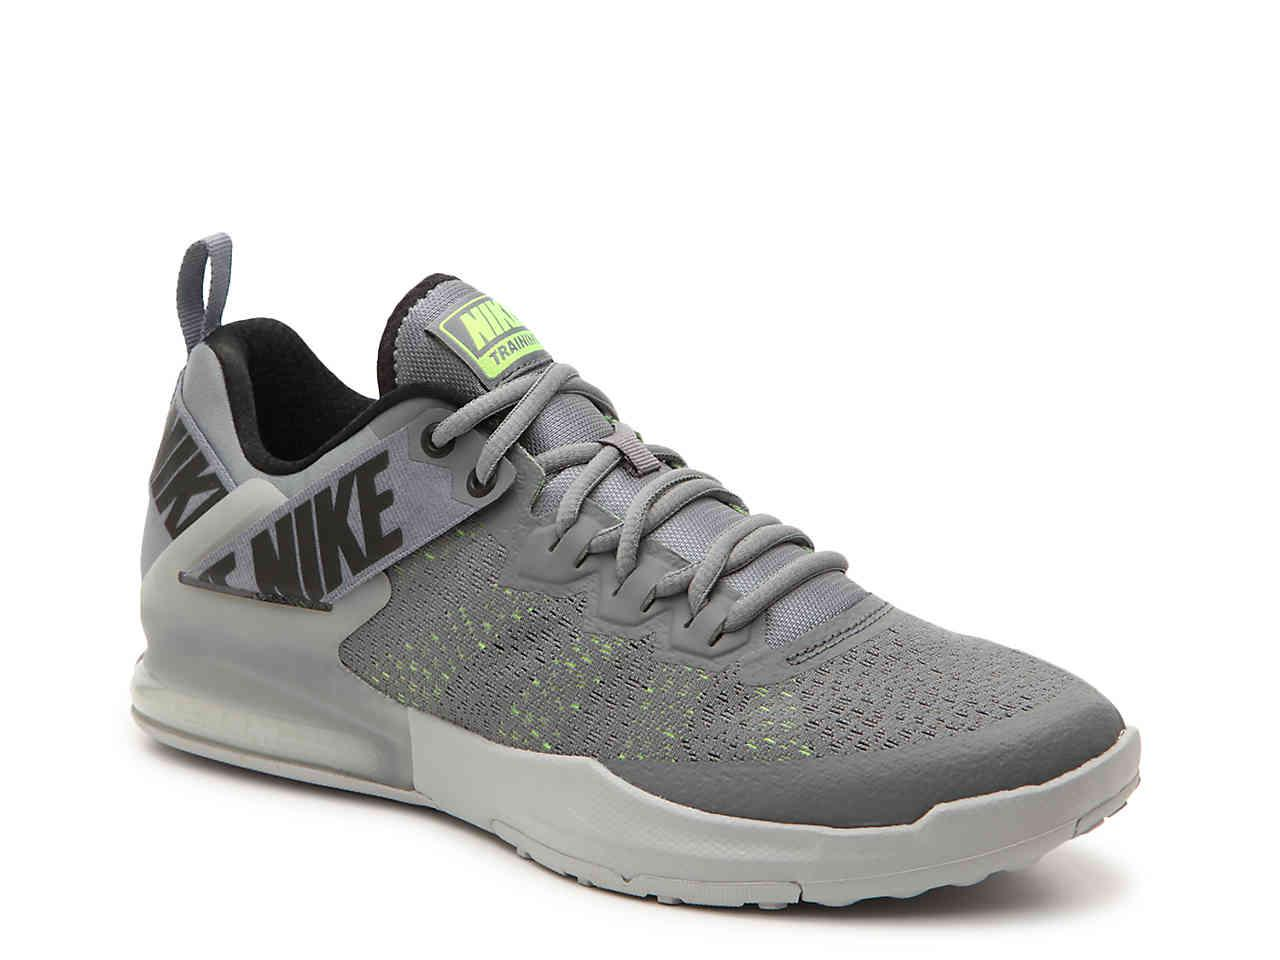 35e7f6ffbf3b Lyst - Nike Zoom Domination Tr 2 Training Shoe in Gray for Men